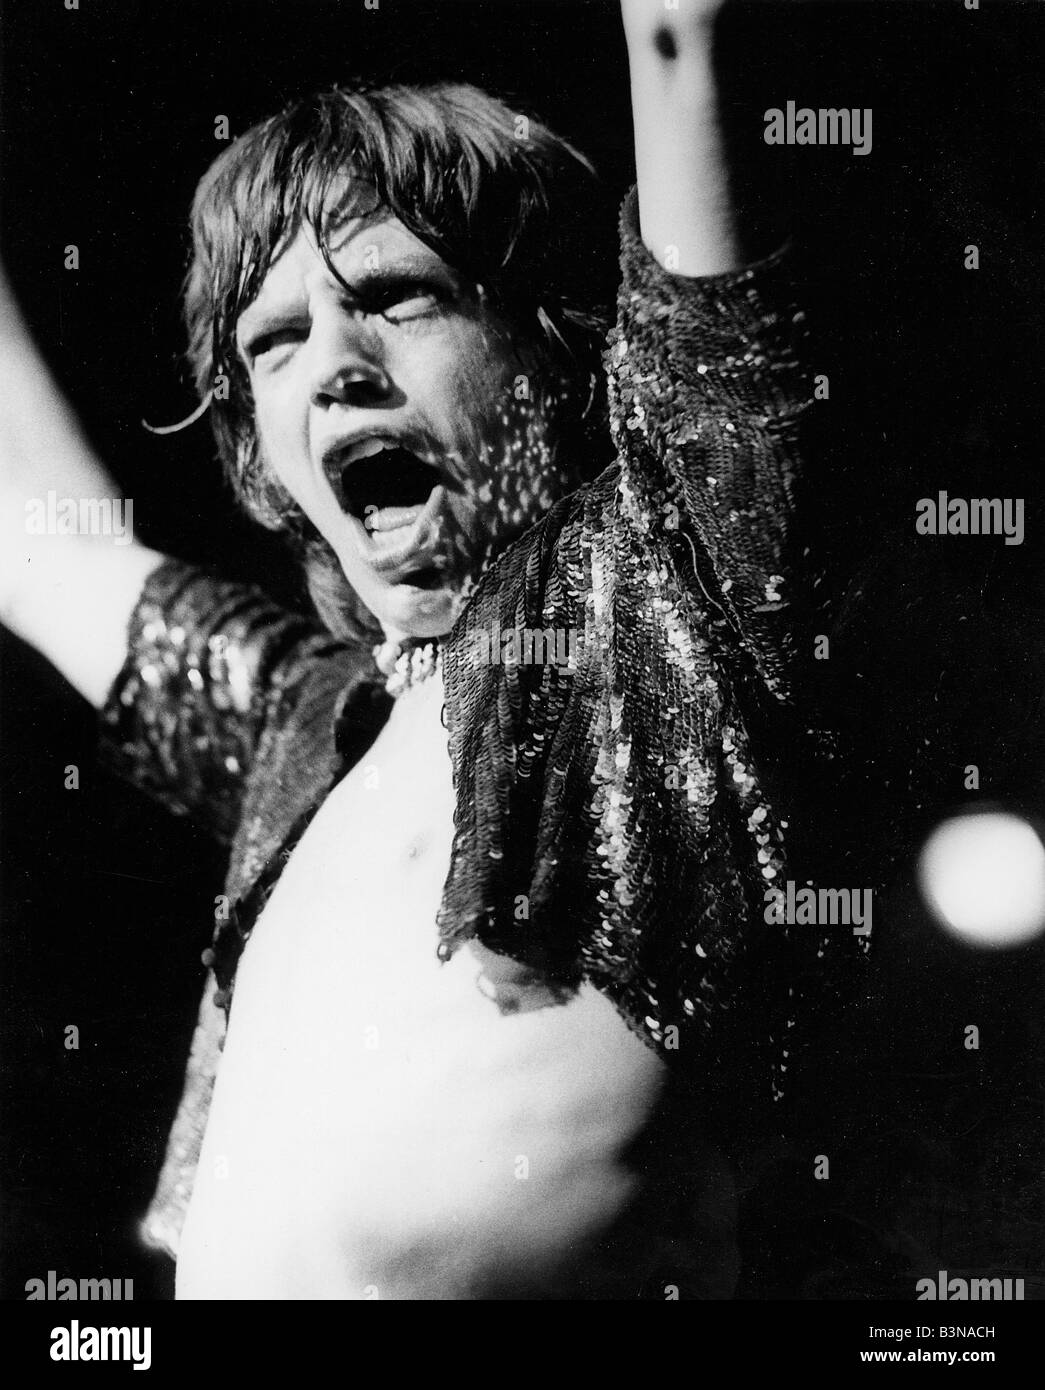 ROLLING STONES  - Mick Jagger in 1973 - Stock Image